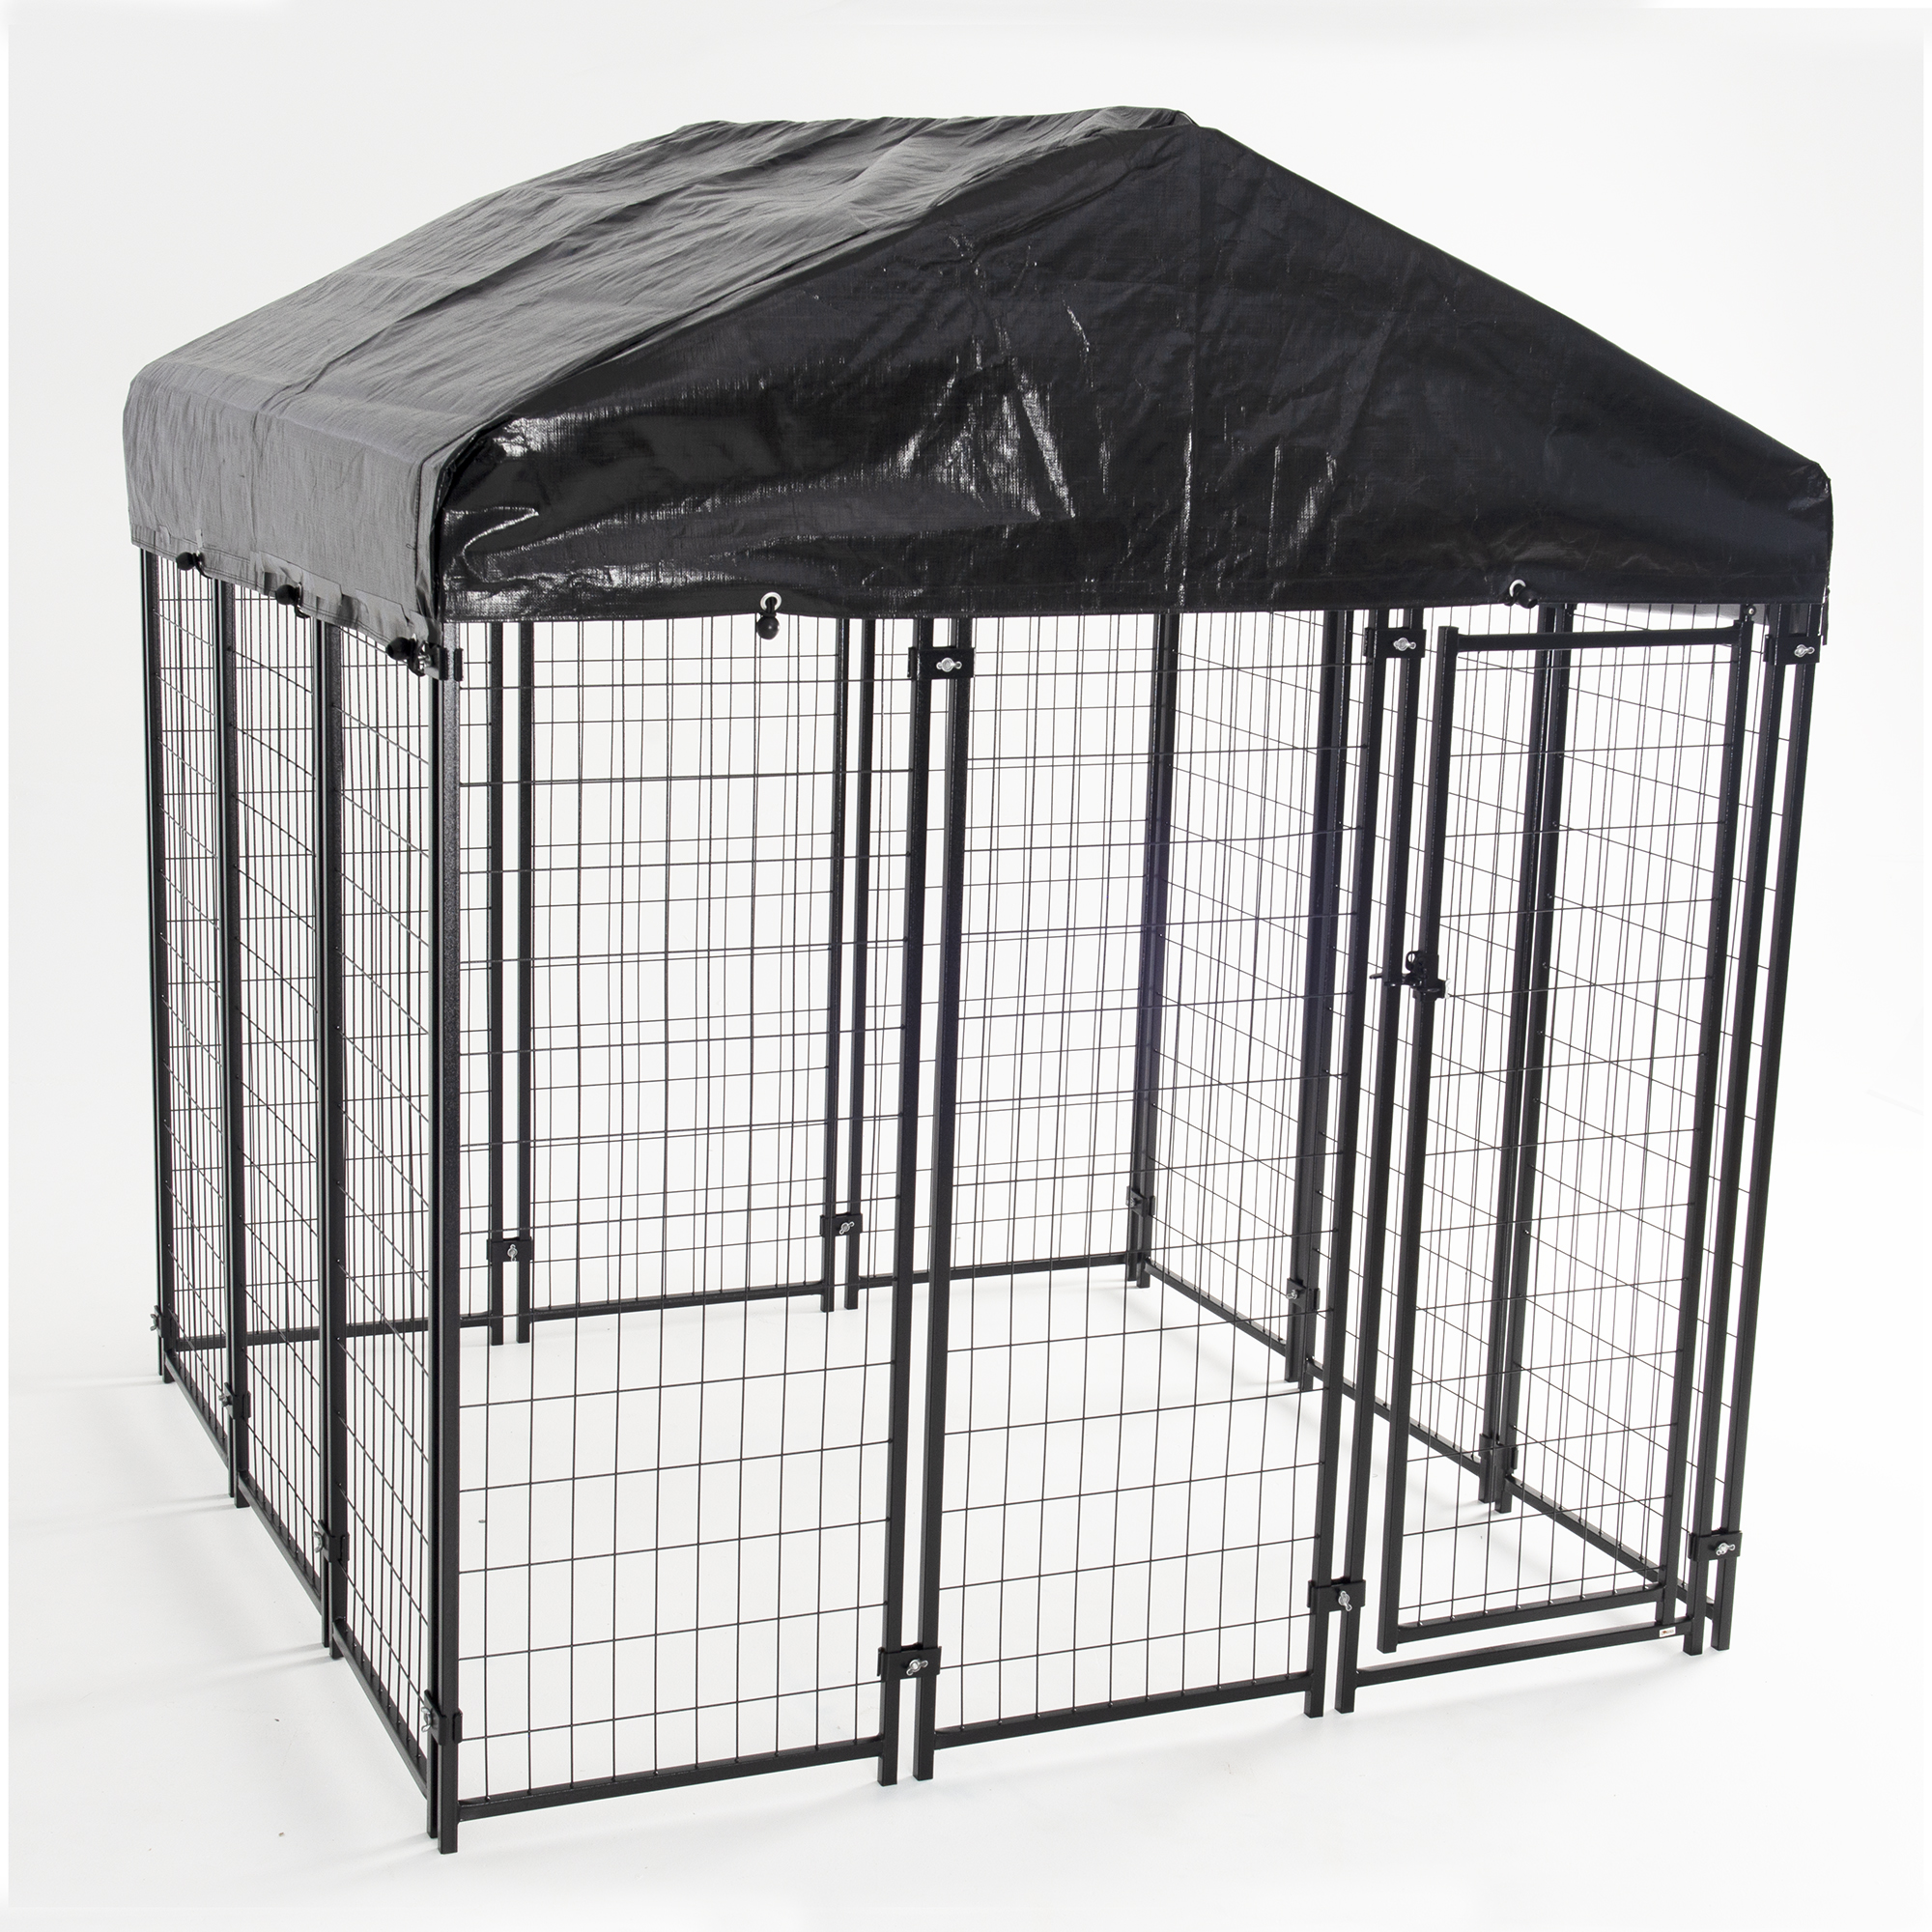 AKC® Uptown Dog™ 6ft x 6ft x 6ft. High Heavy-duty Dog Kennel with Roof & Cover for Backyards, Large Decks & Patios includes Free Training Guide